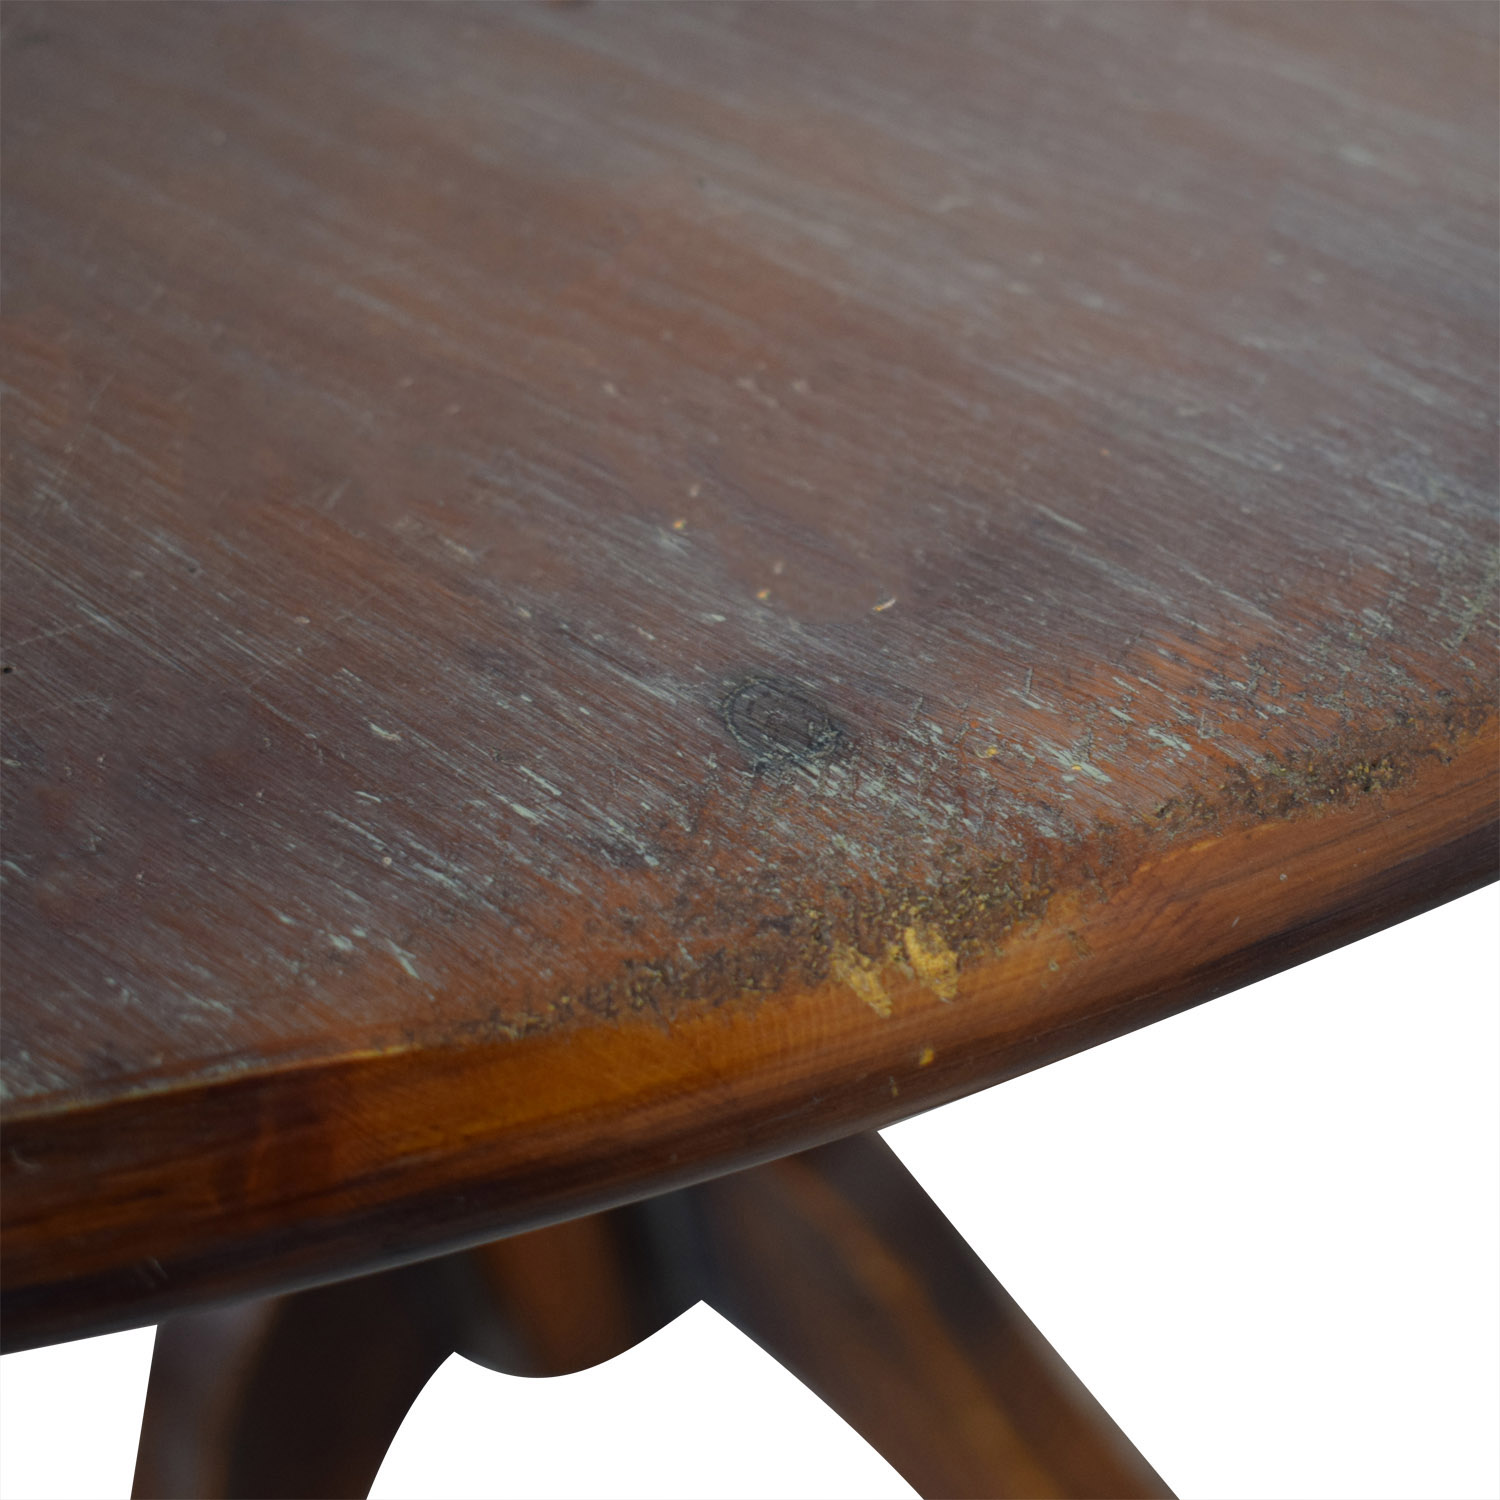 Pottery Barn Pottery Barn Round Wood Pedestal Dining Table second hand